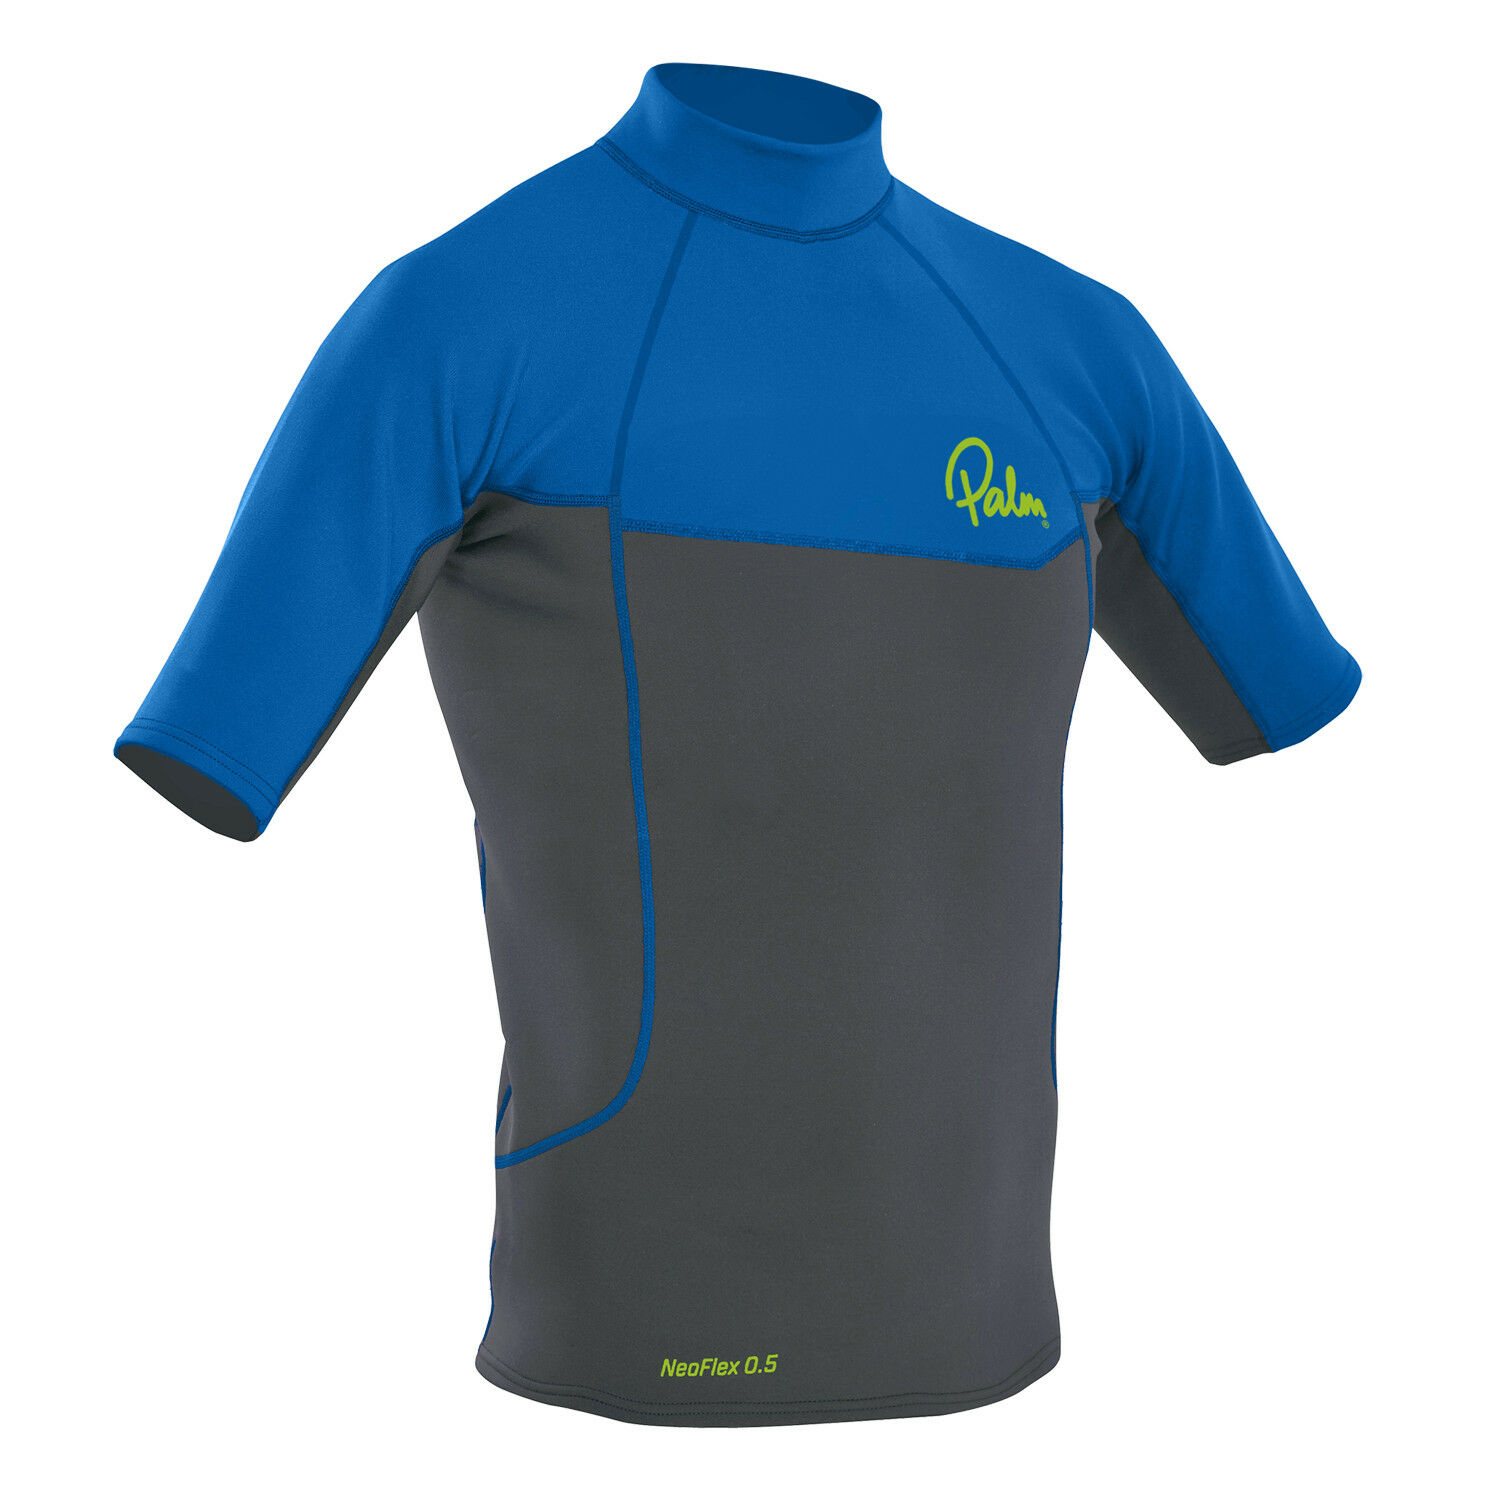 Palm NeoFlex Shortsleeve Top  2019 - Jet Grey blueee  hottest new styles